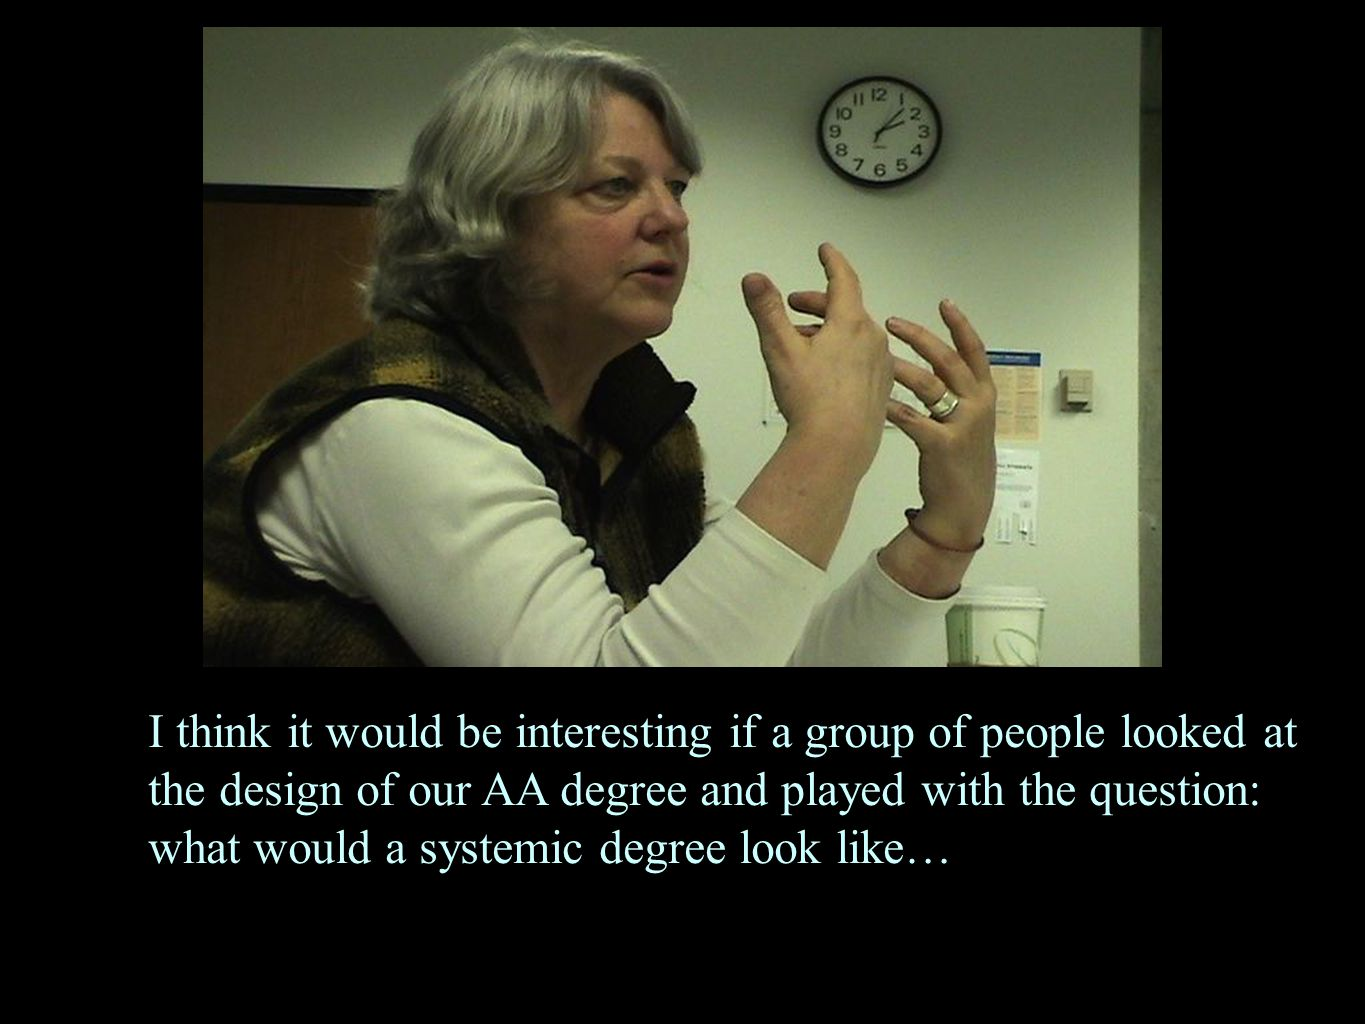 I think it would be interesting if a group of people looked at the design of our AA degree and played with the question: what would a systemic degree